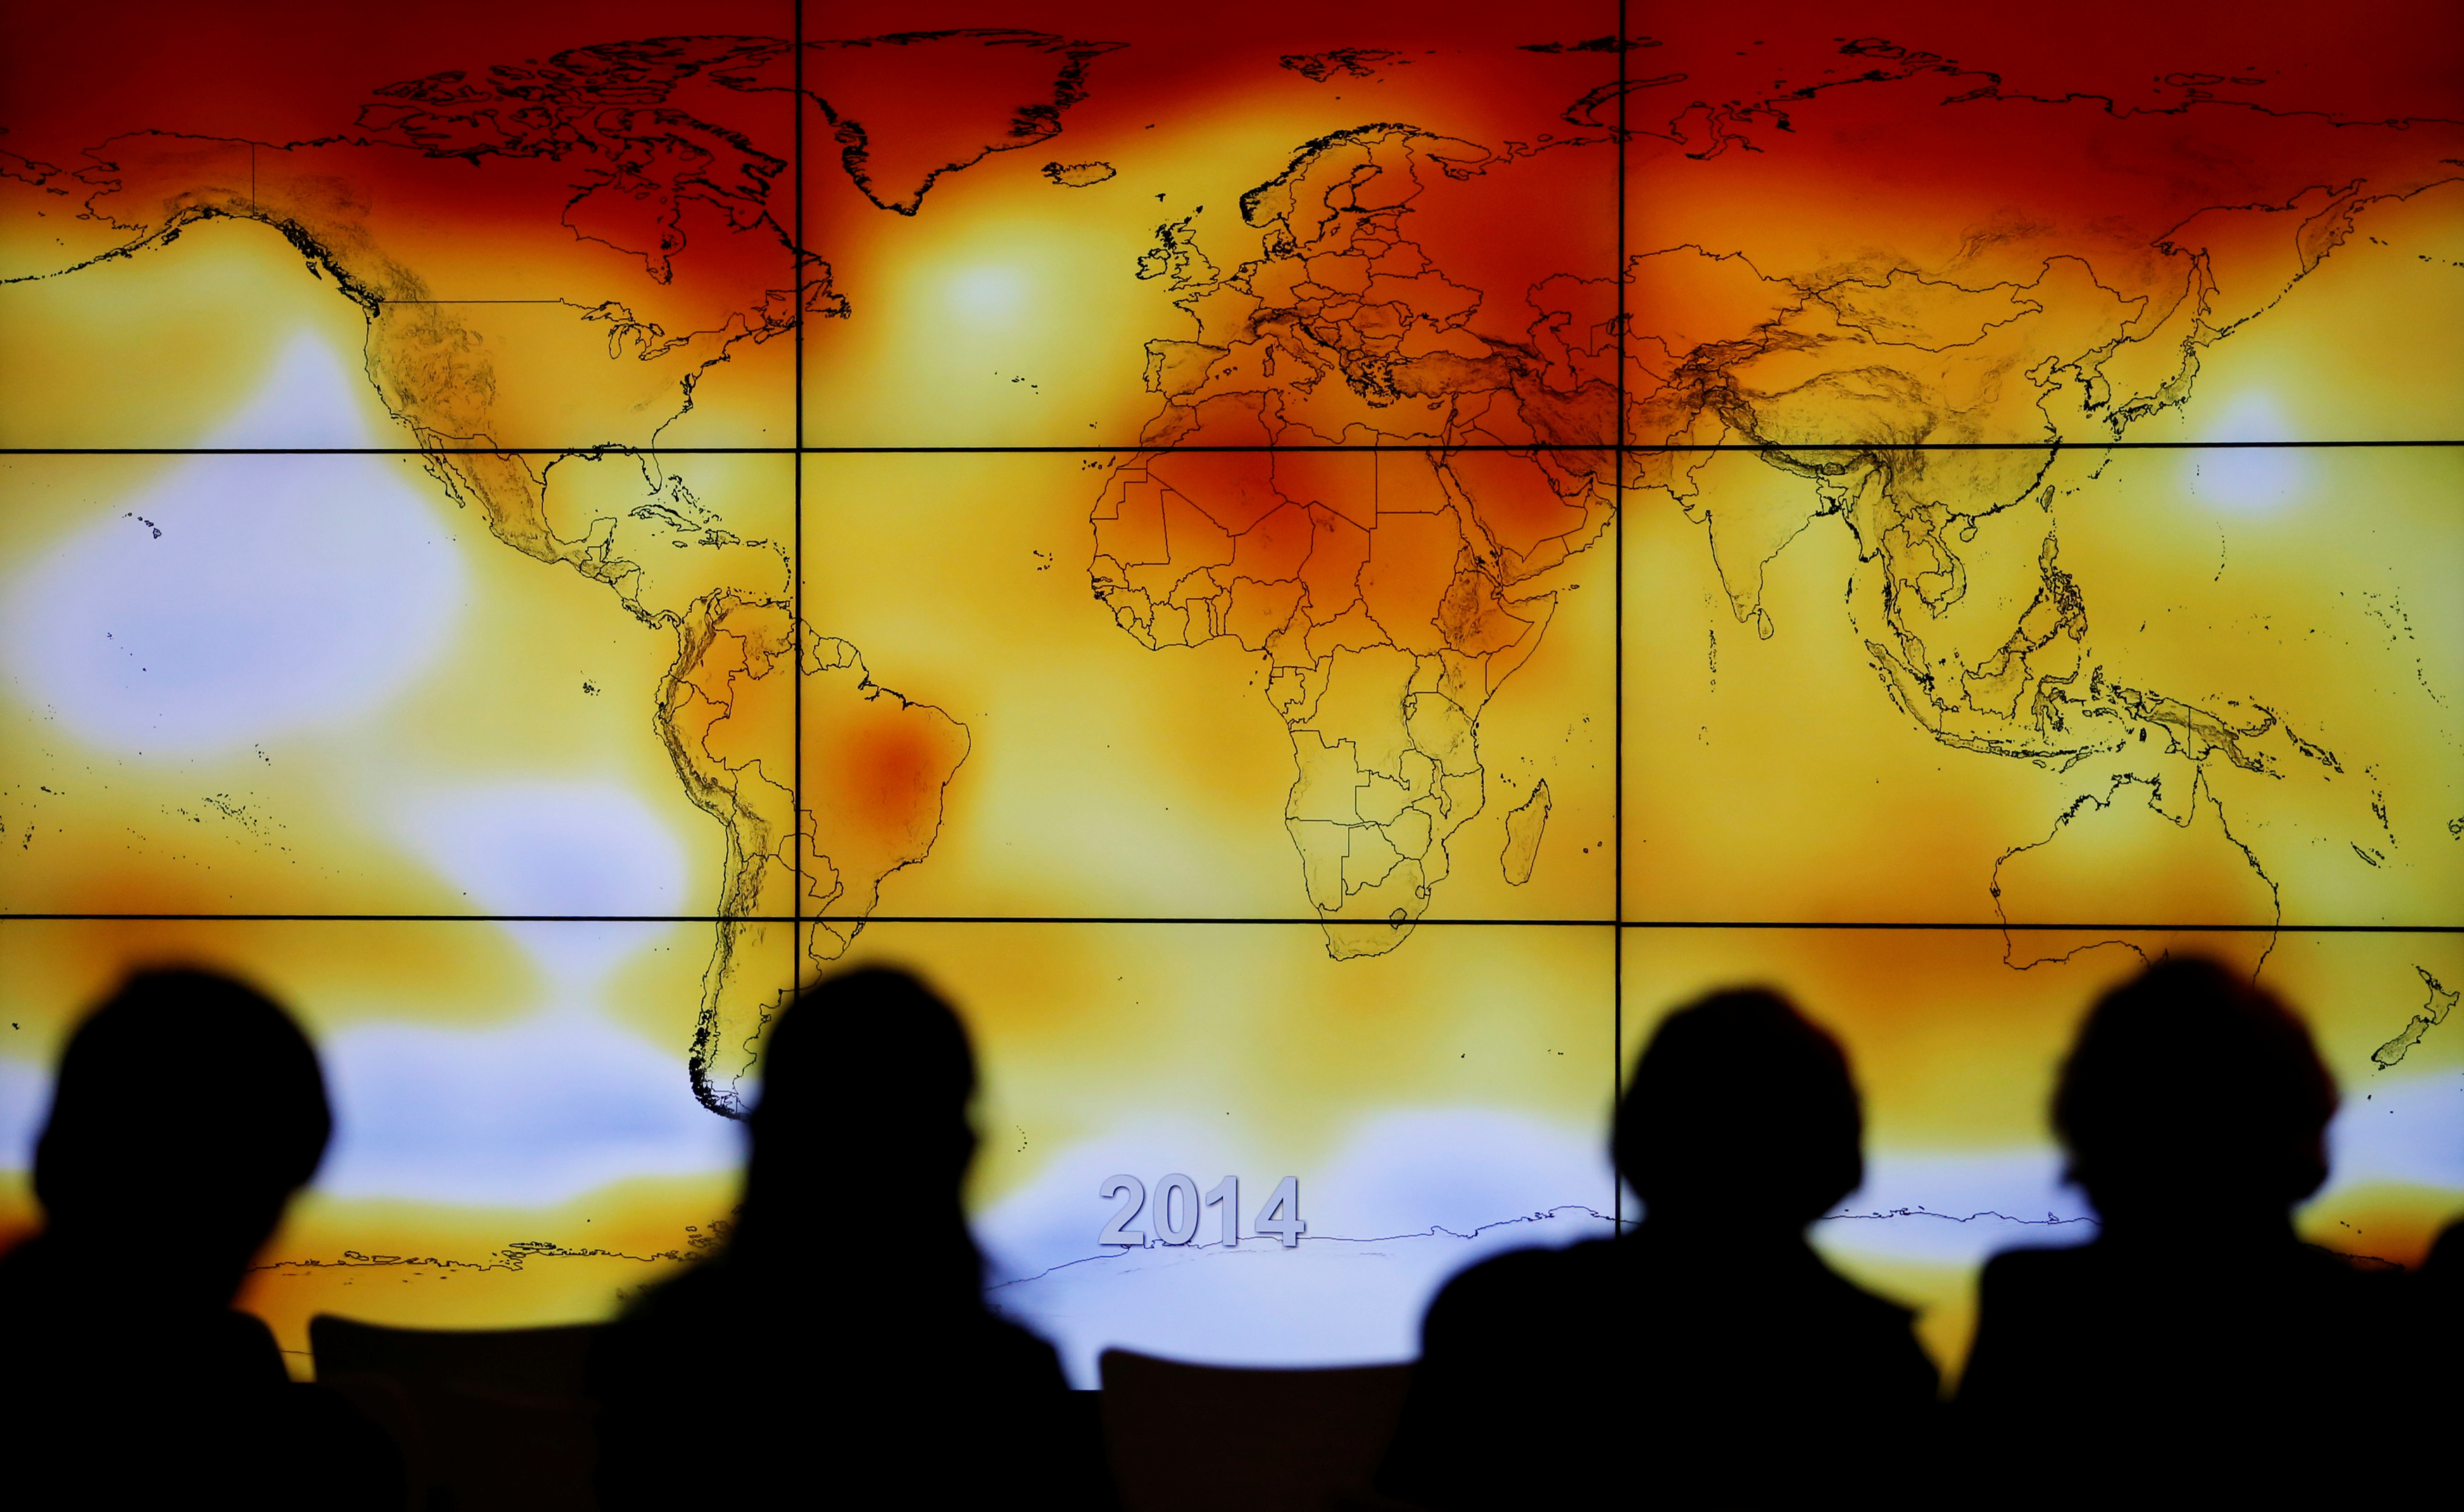 Participants look at a screen projecting a world map with climate anomalies during the World Climate Change Conference 2015 (COP21) at Le Bourget